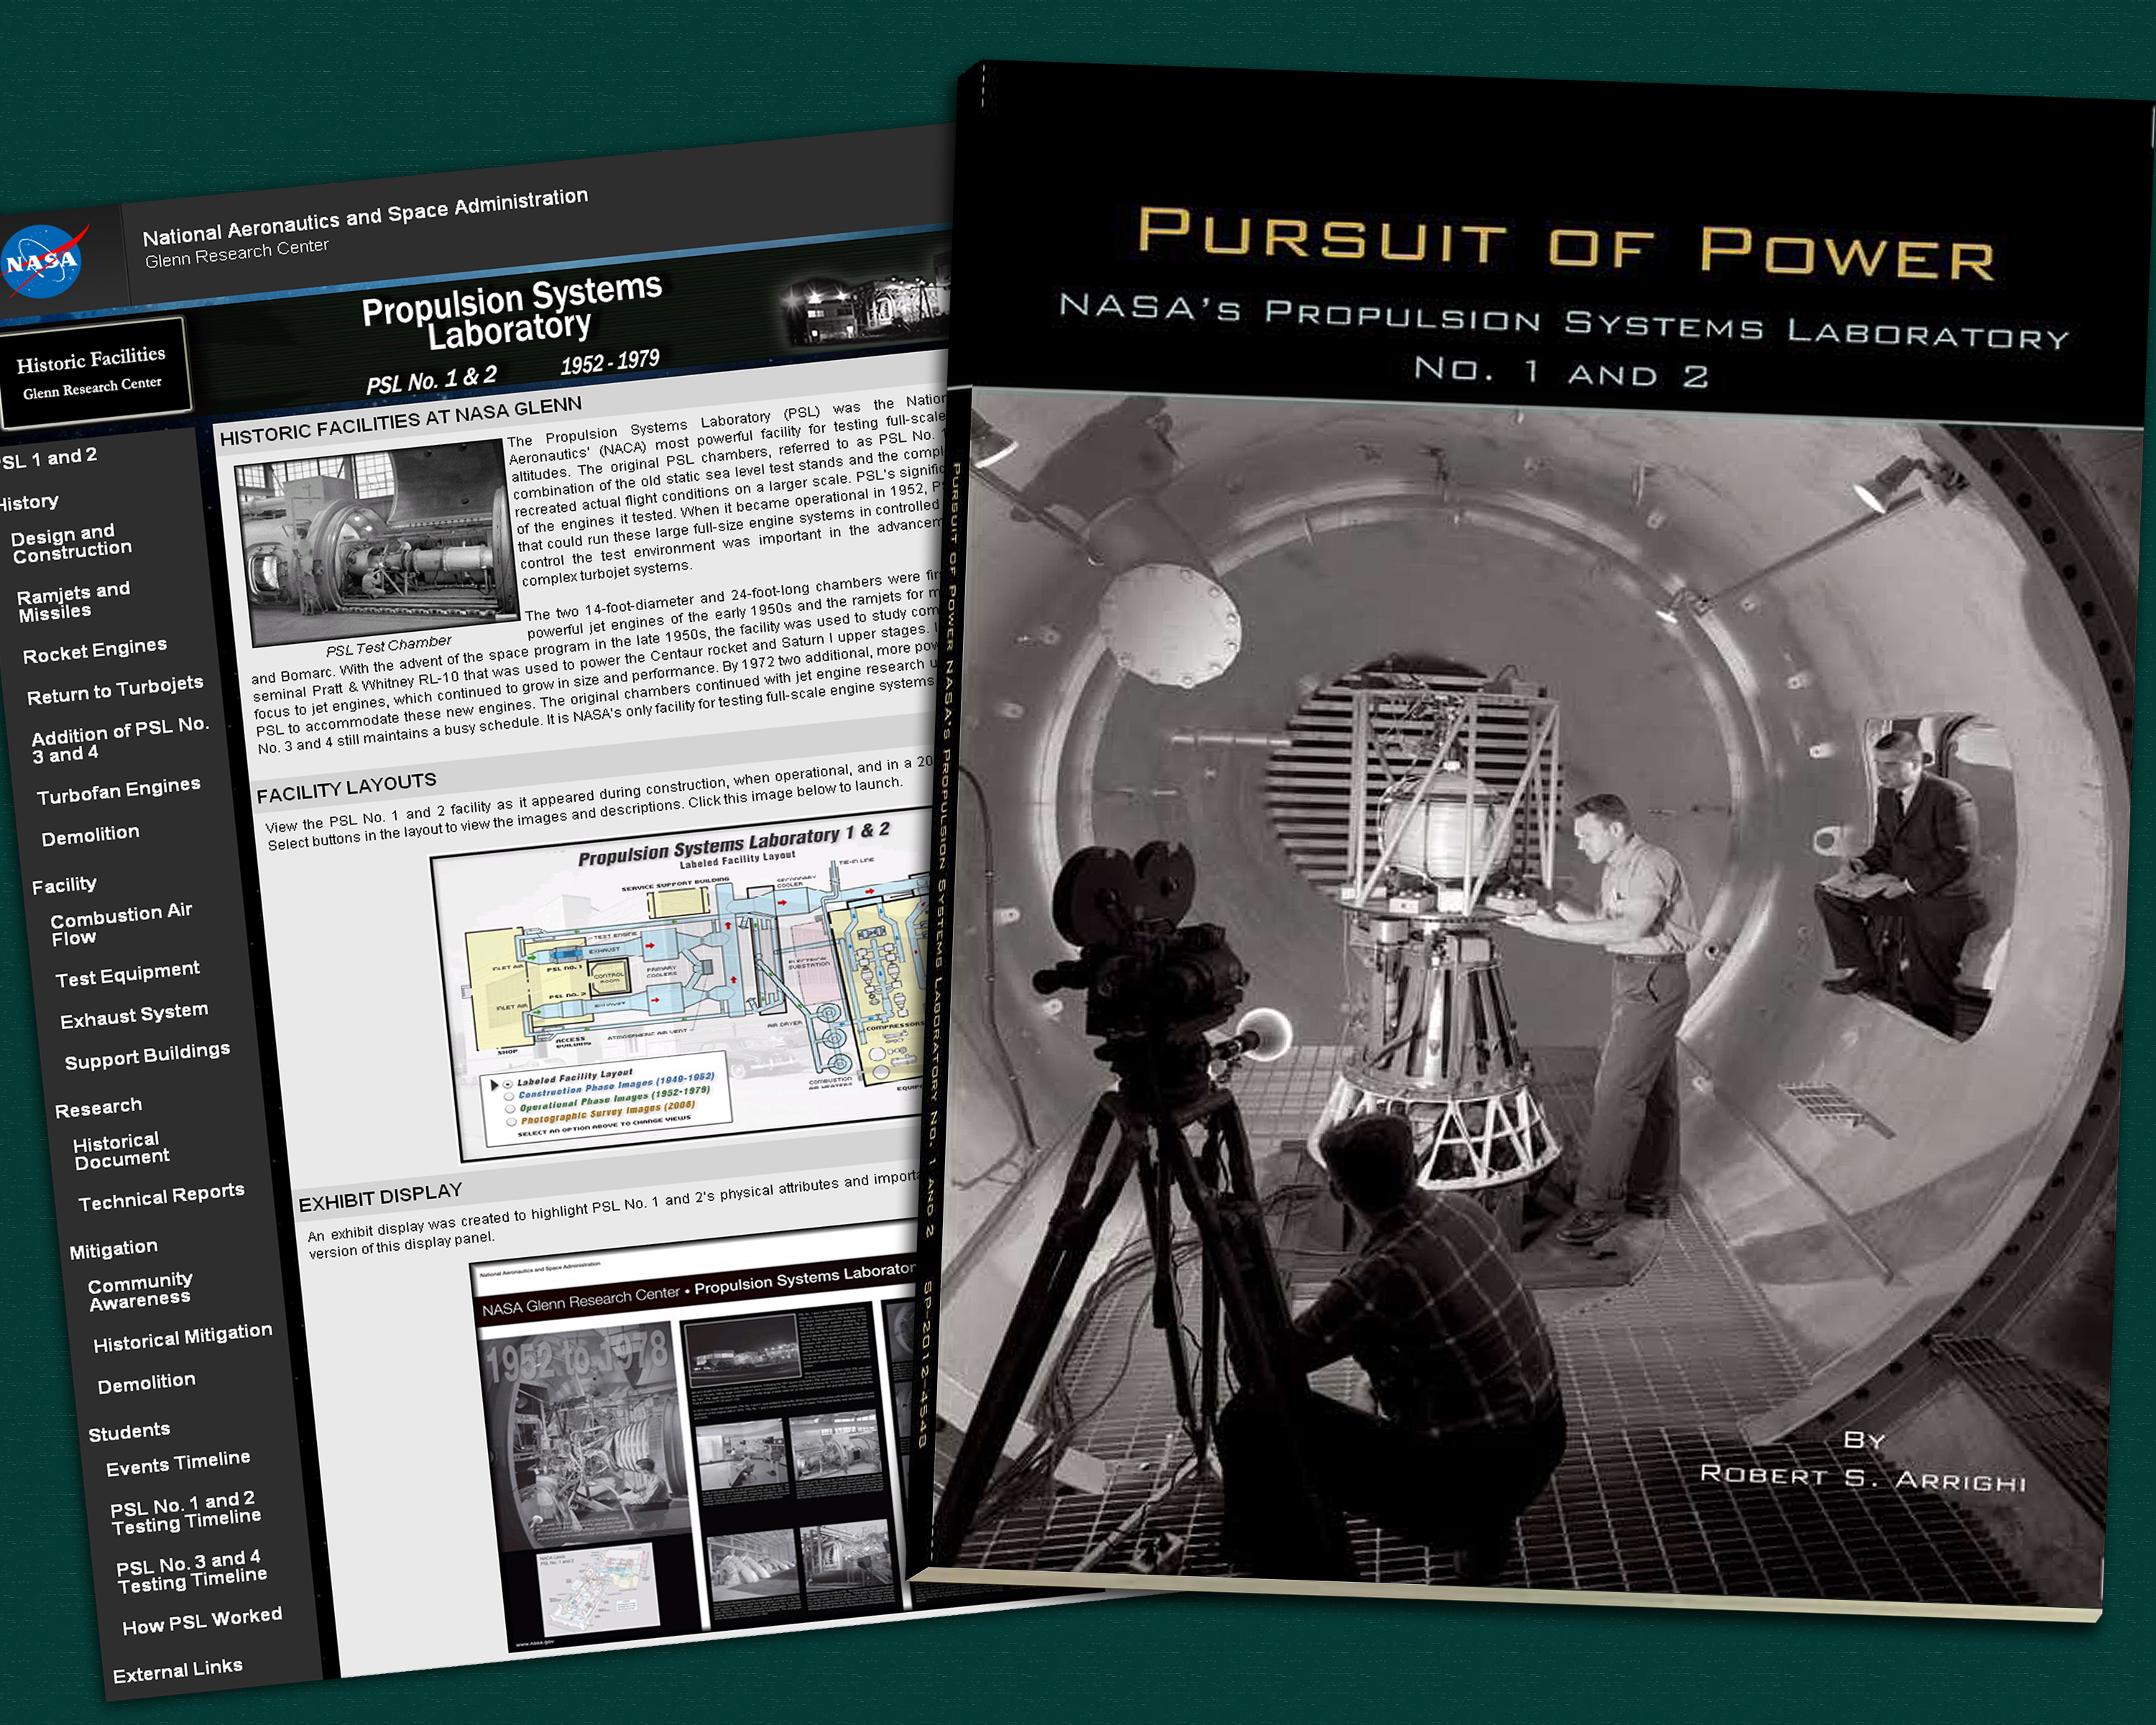 ... Propulsion Systems Lab No. 1 and 2 (2009). Covers of PSL historical  publications